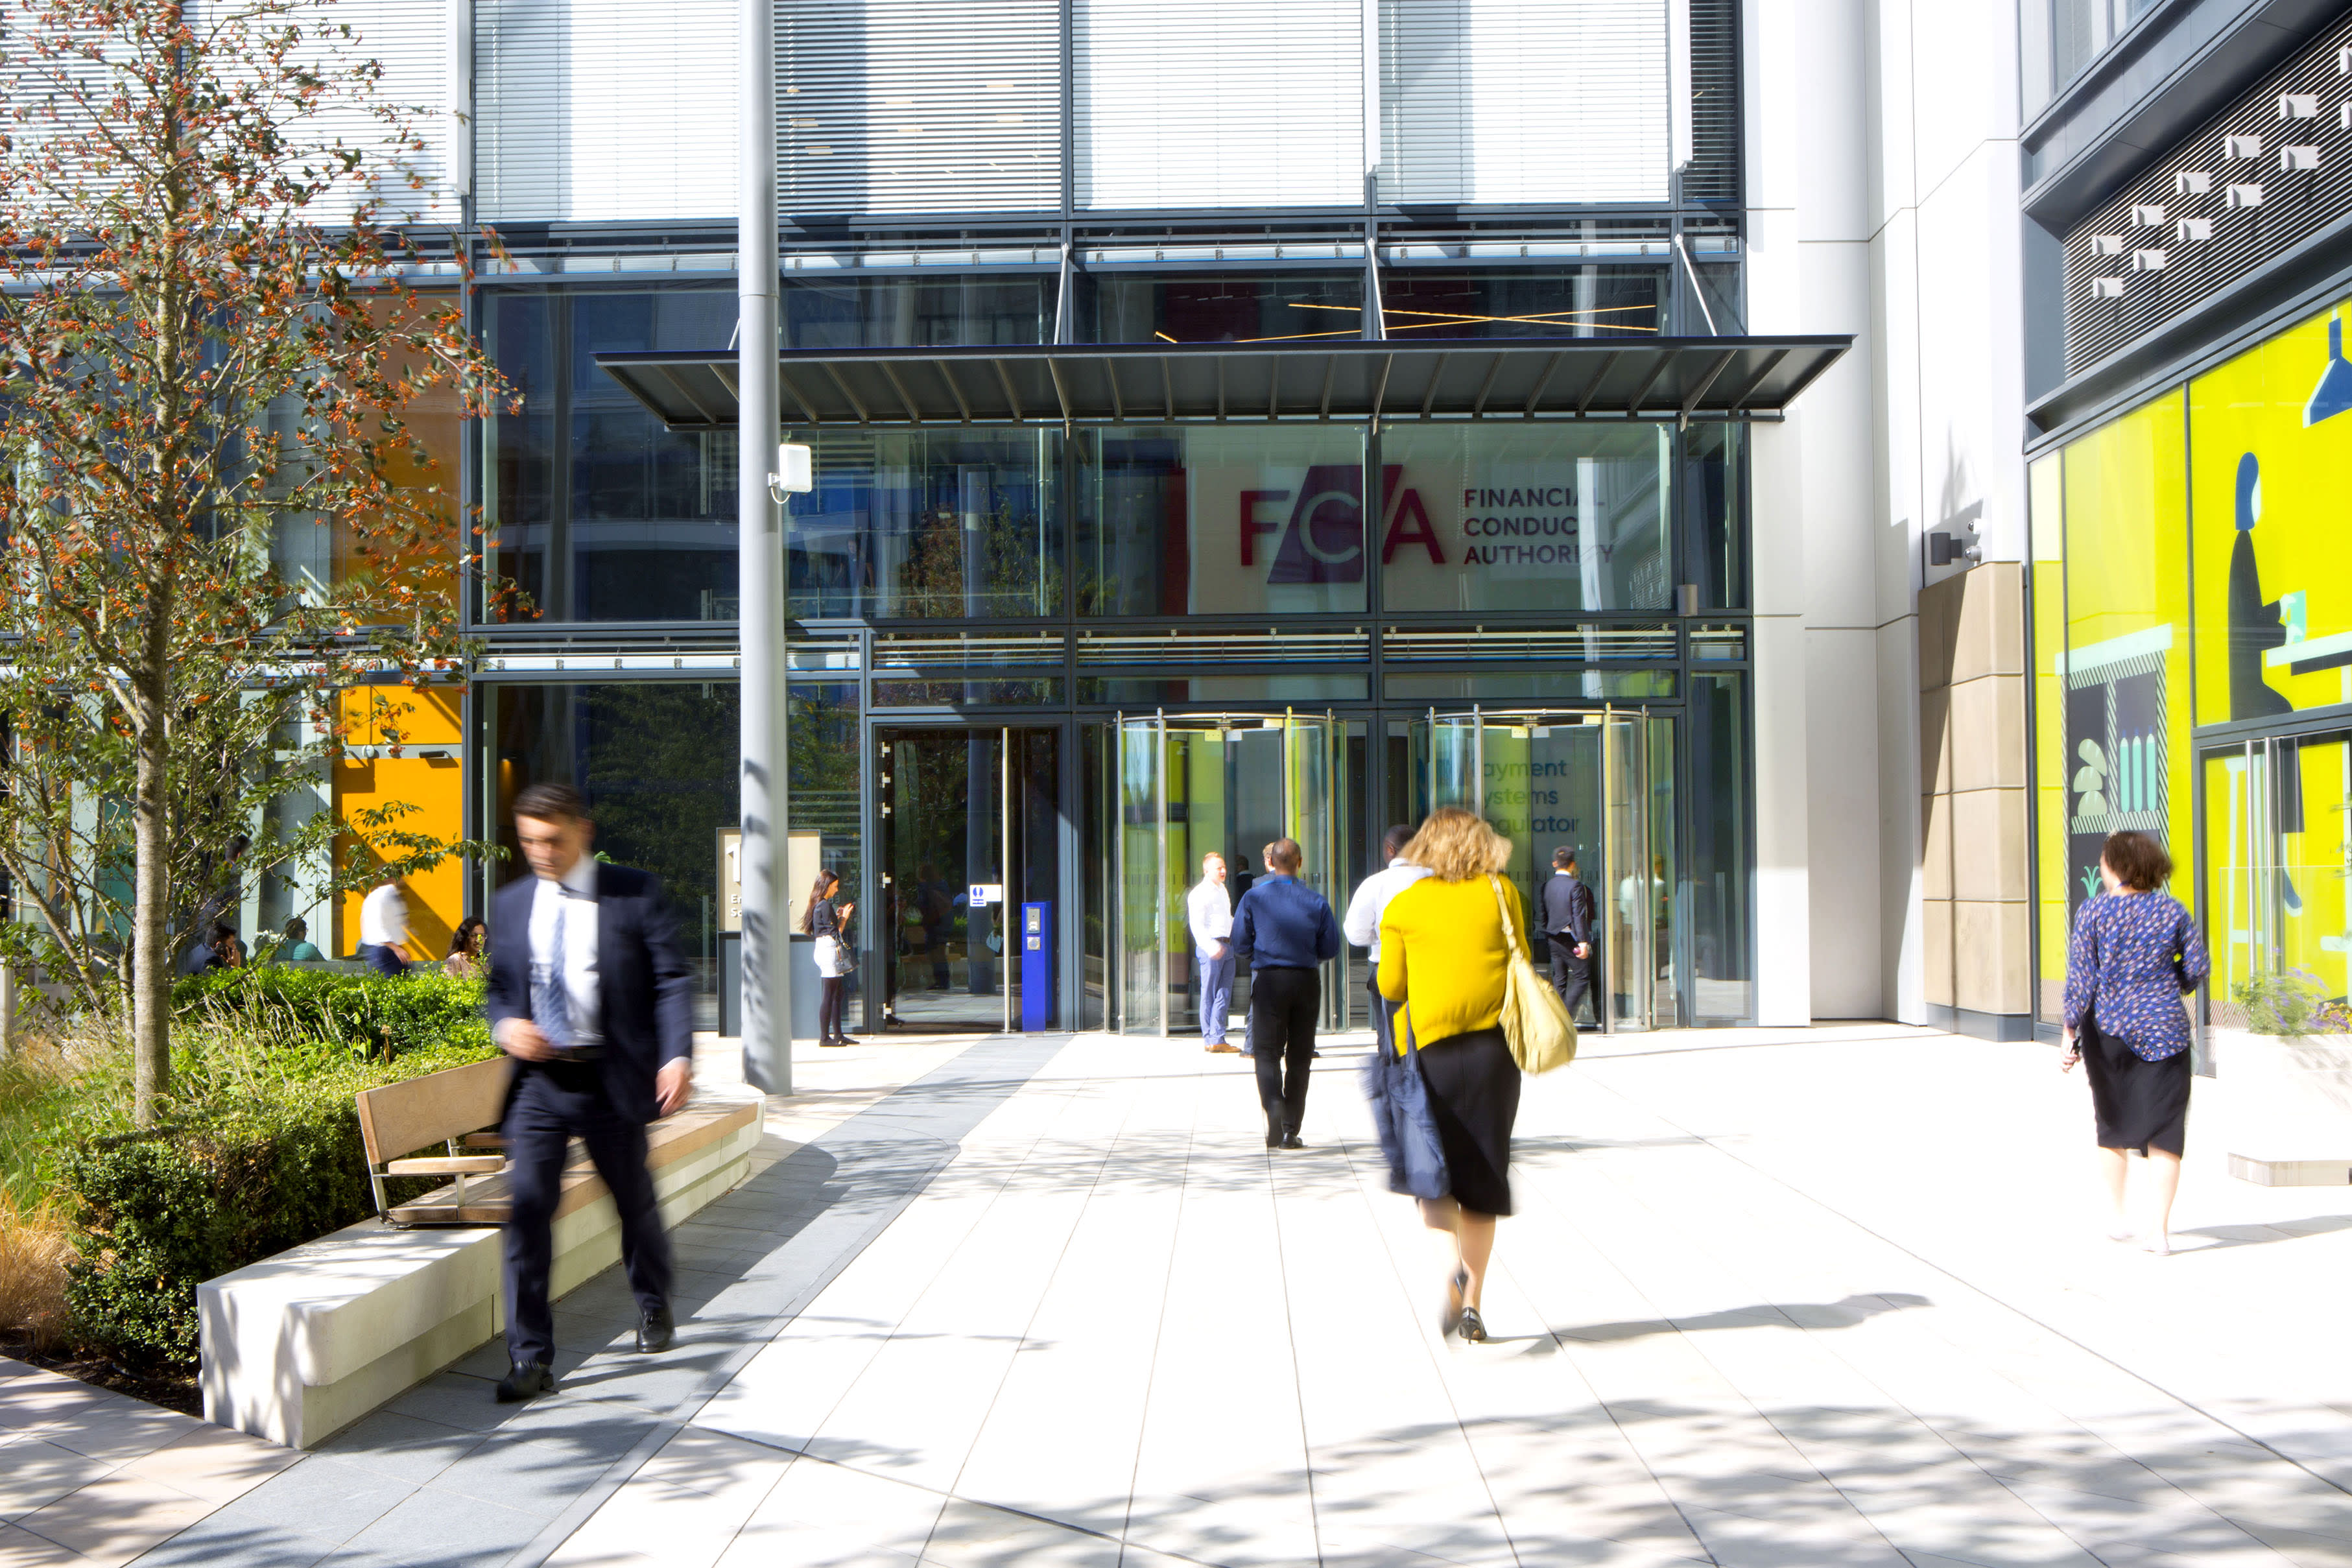 FCA fines drop to four this year in record low